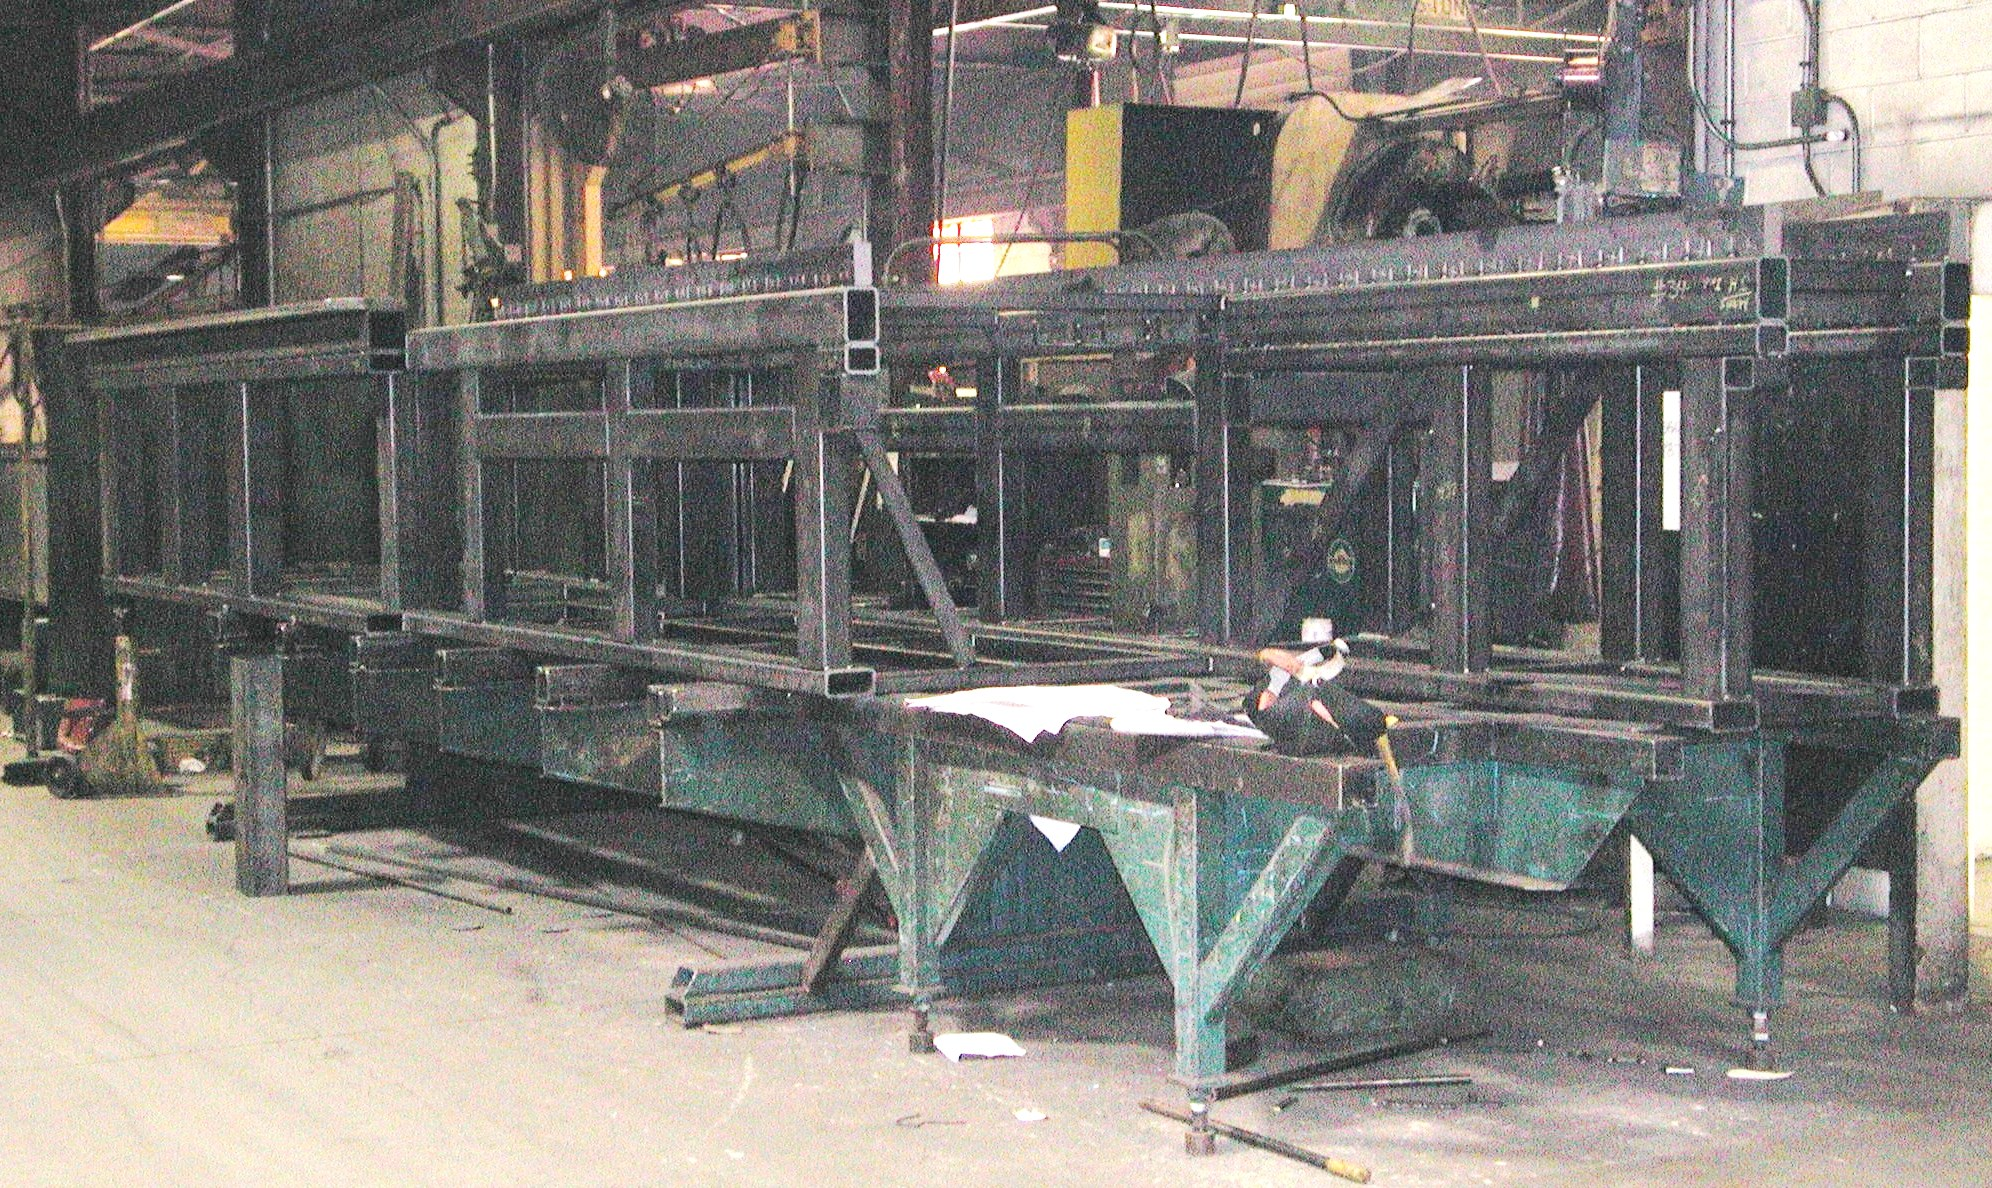 custom steel fabrication large machined fabrications